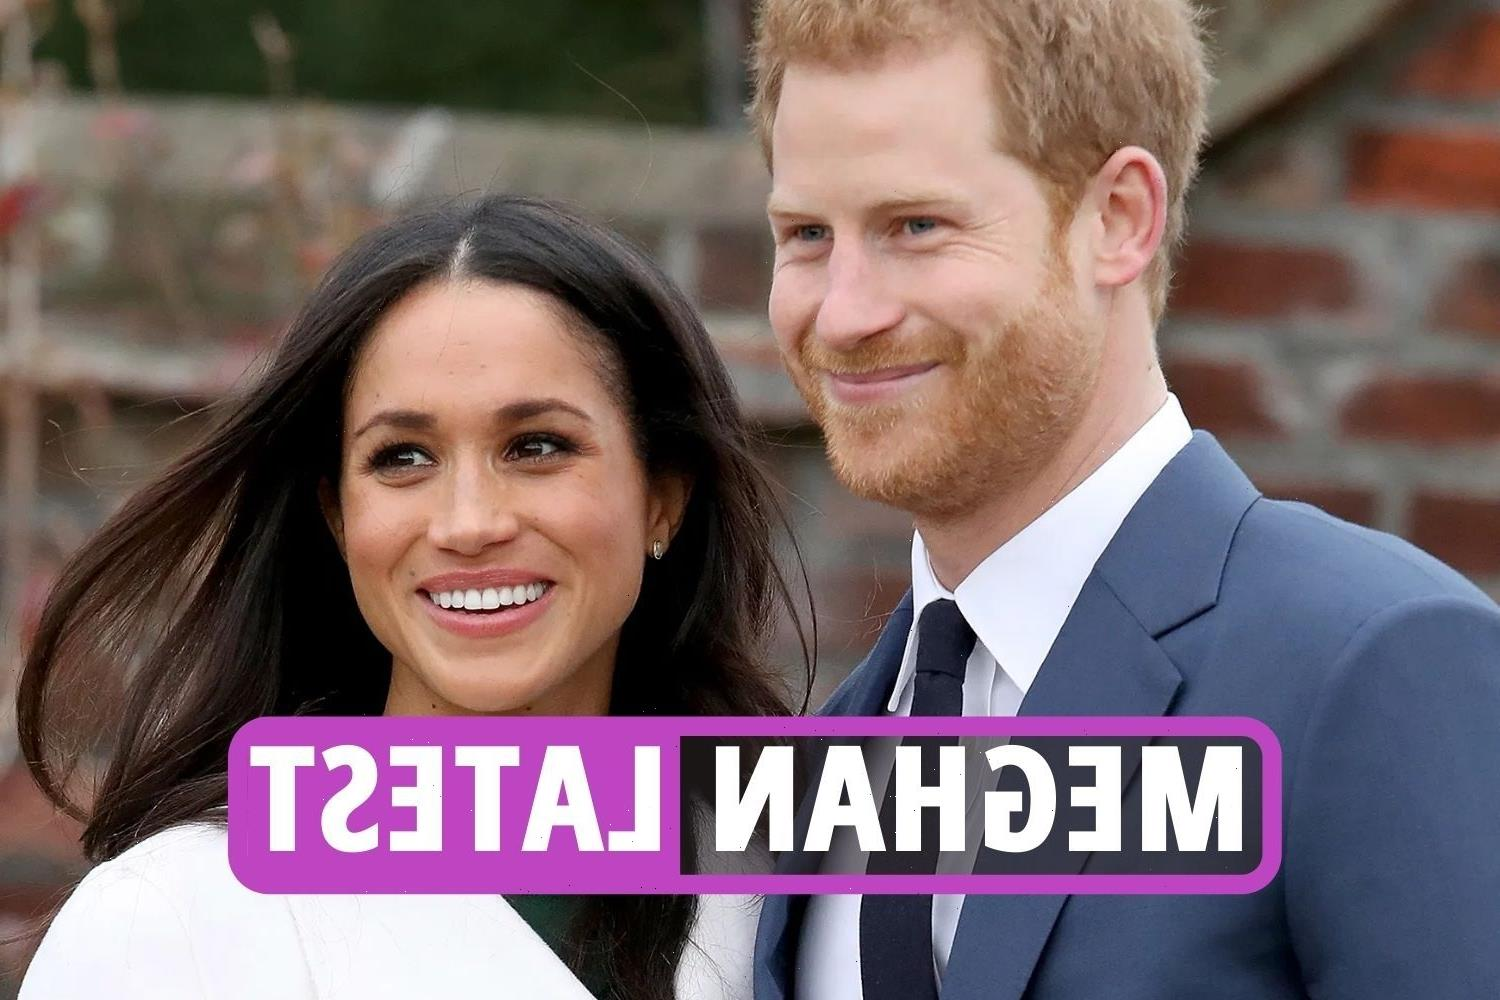 Meghan Markle news latest – Prince Harry's EXPLOSIVE tell-all book sends 'tsunami of fear' ripping through royal family